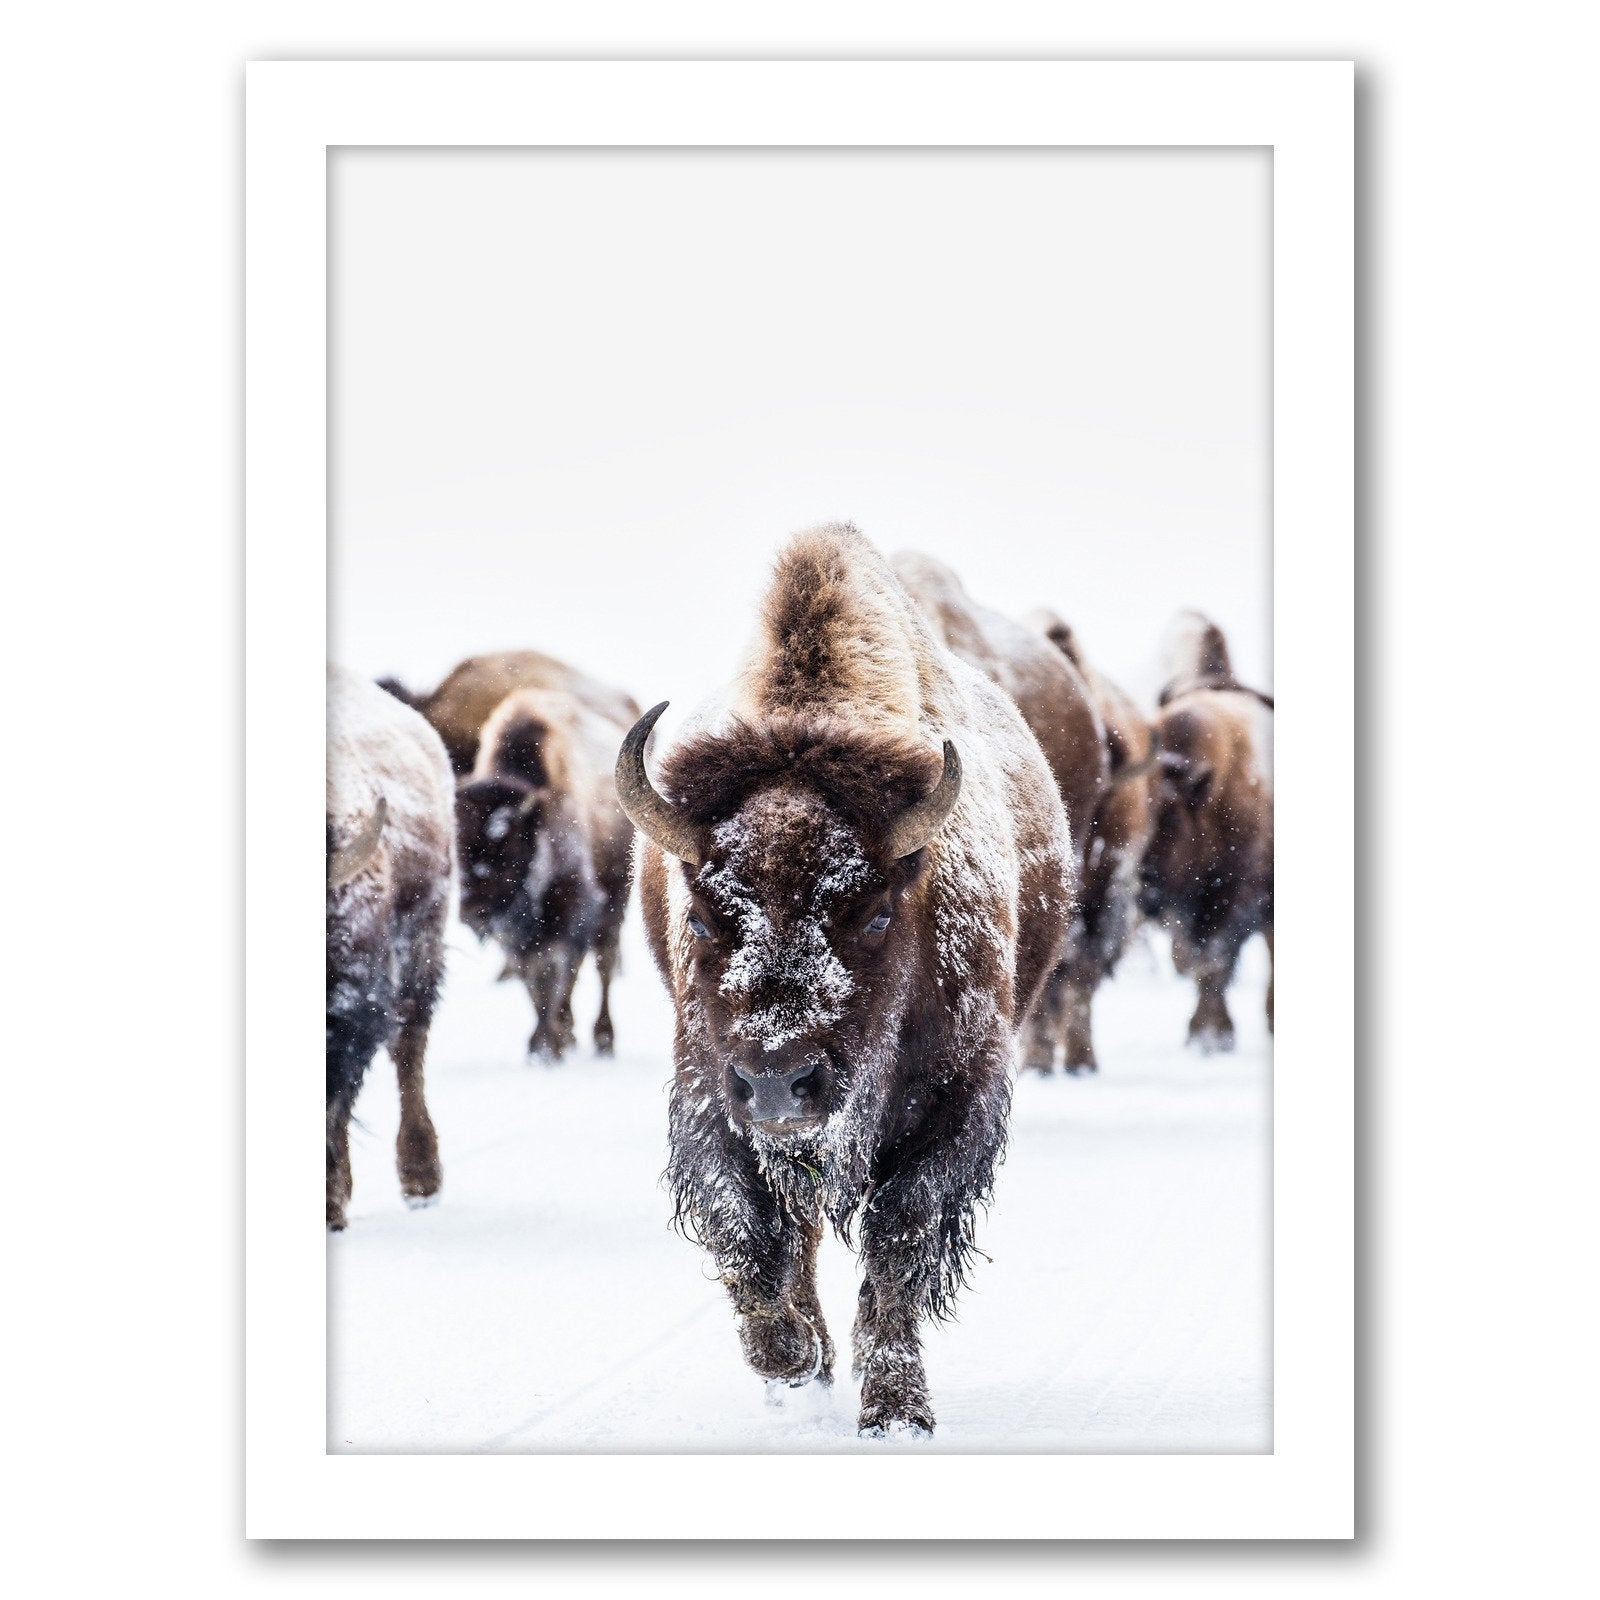 Bison Wall Art by Tanya Shumkina - Framed Print - Americanflat